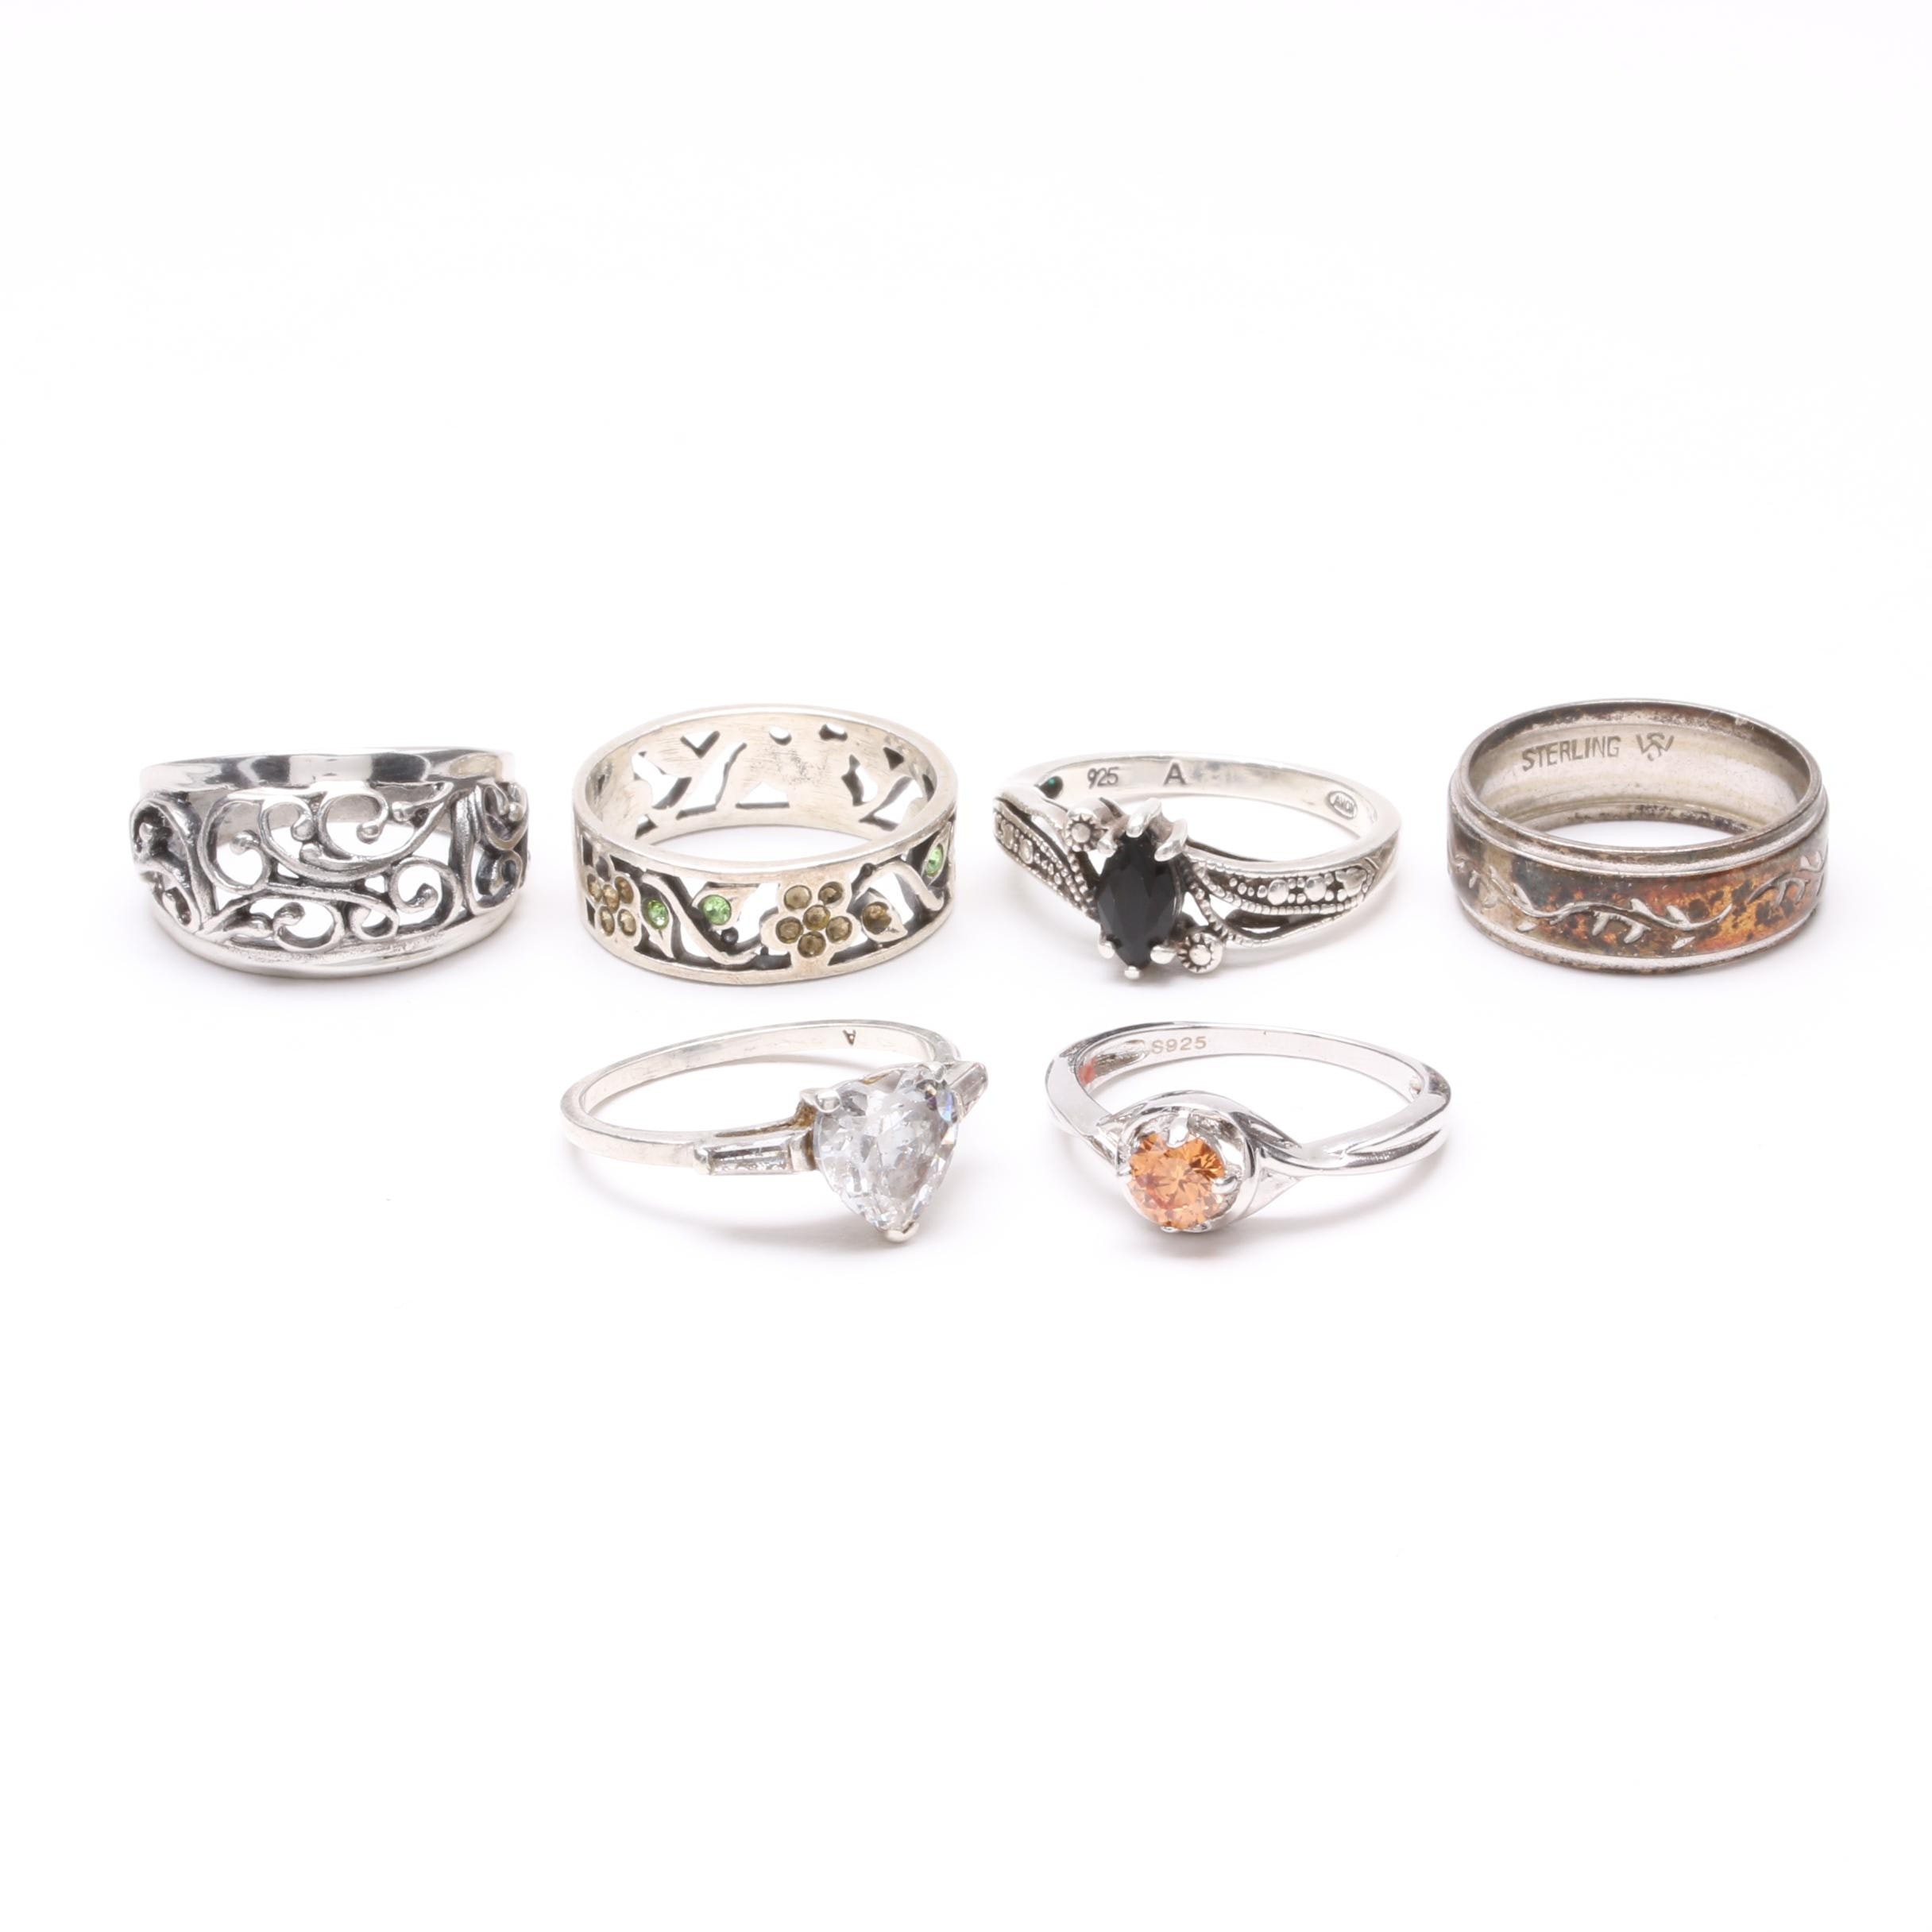 Sterling Silver Ring Collection Including Glass and Cubic Zirconia